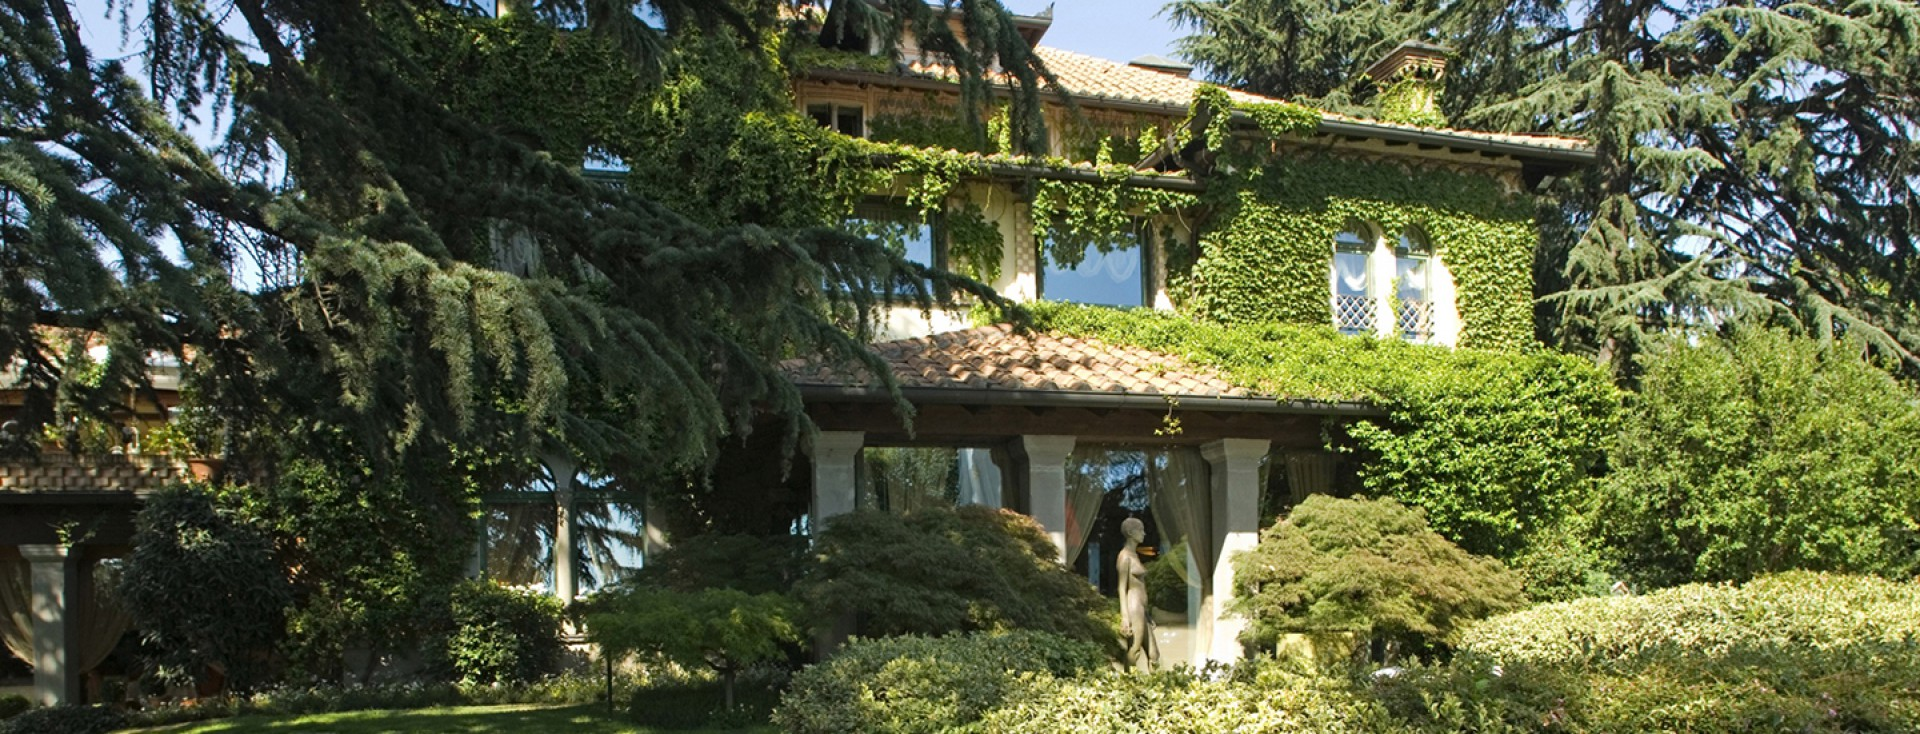 l albereta boutique hotel in the countryside erbusco